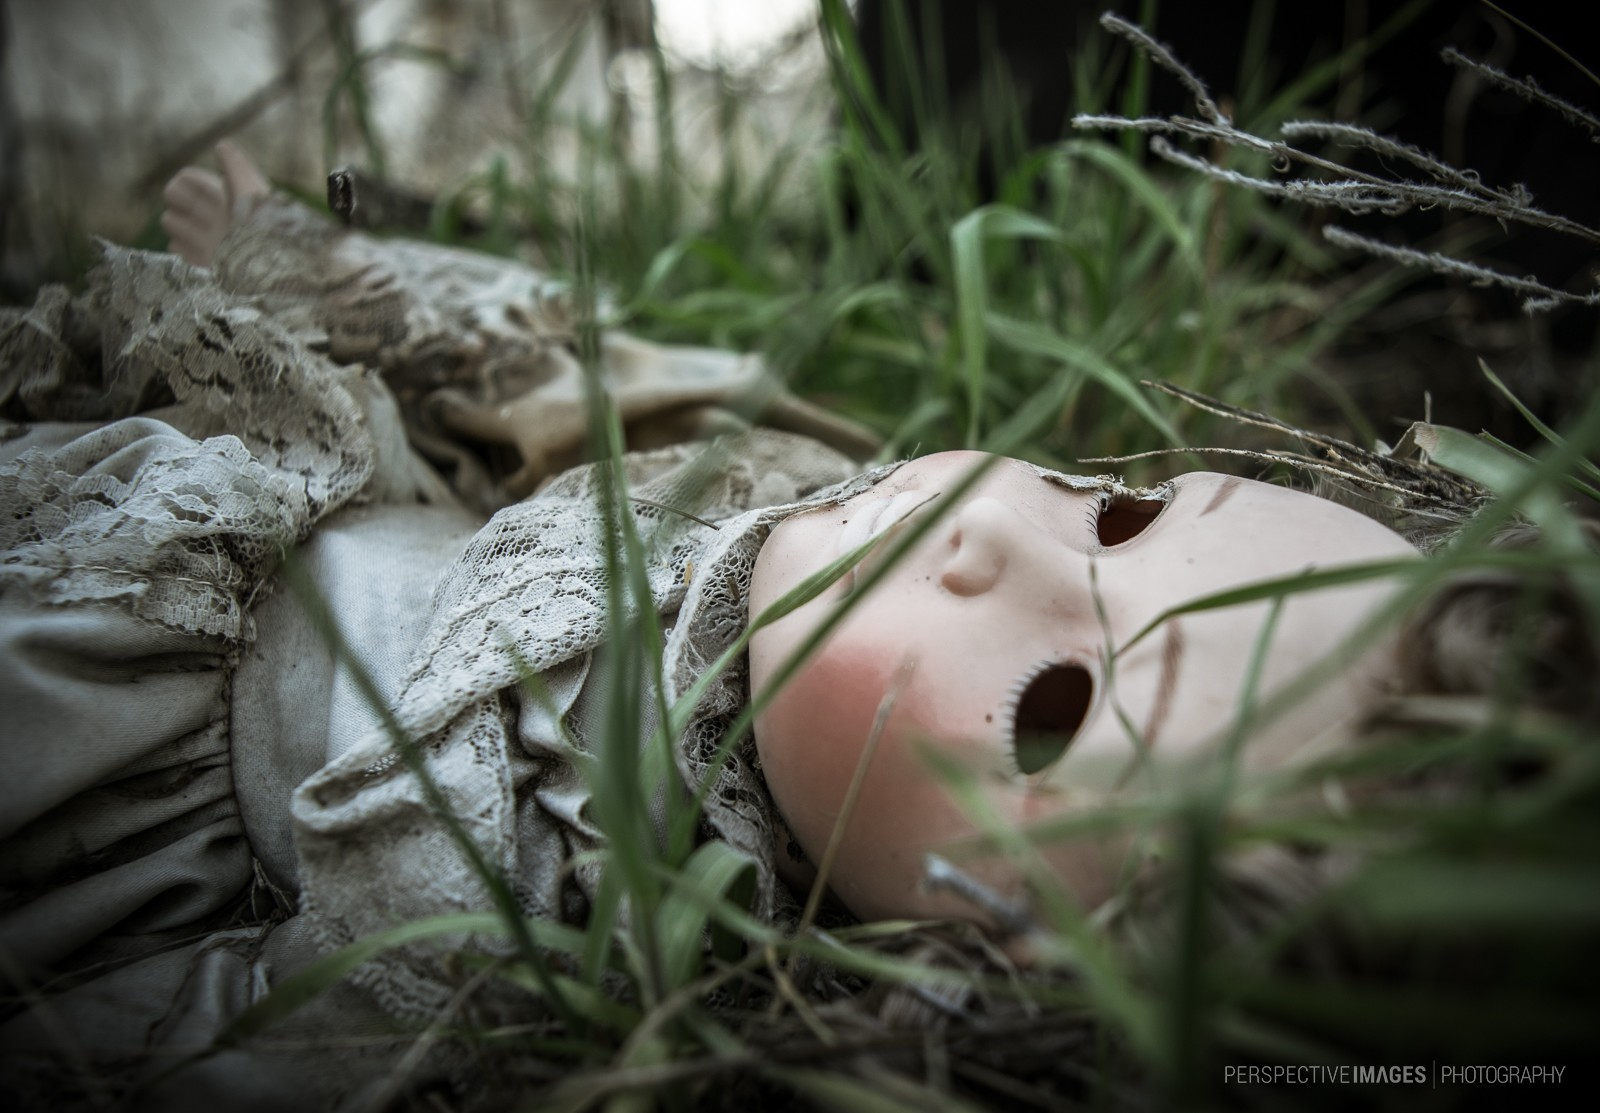 I See Straight Through You - A lifeless, abandoned doll, discarded in the grass.